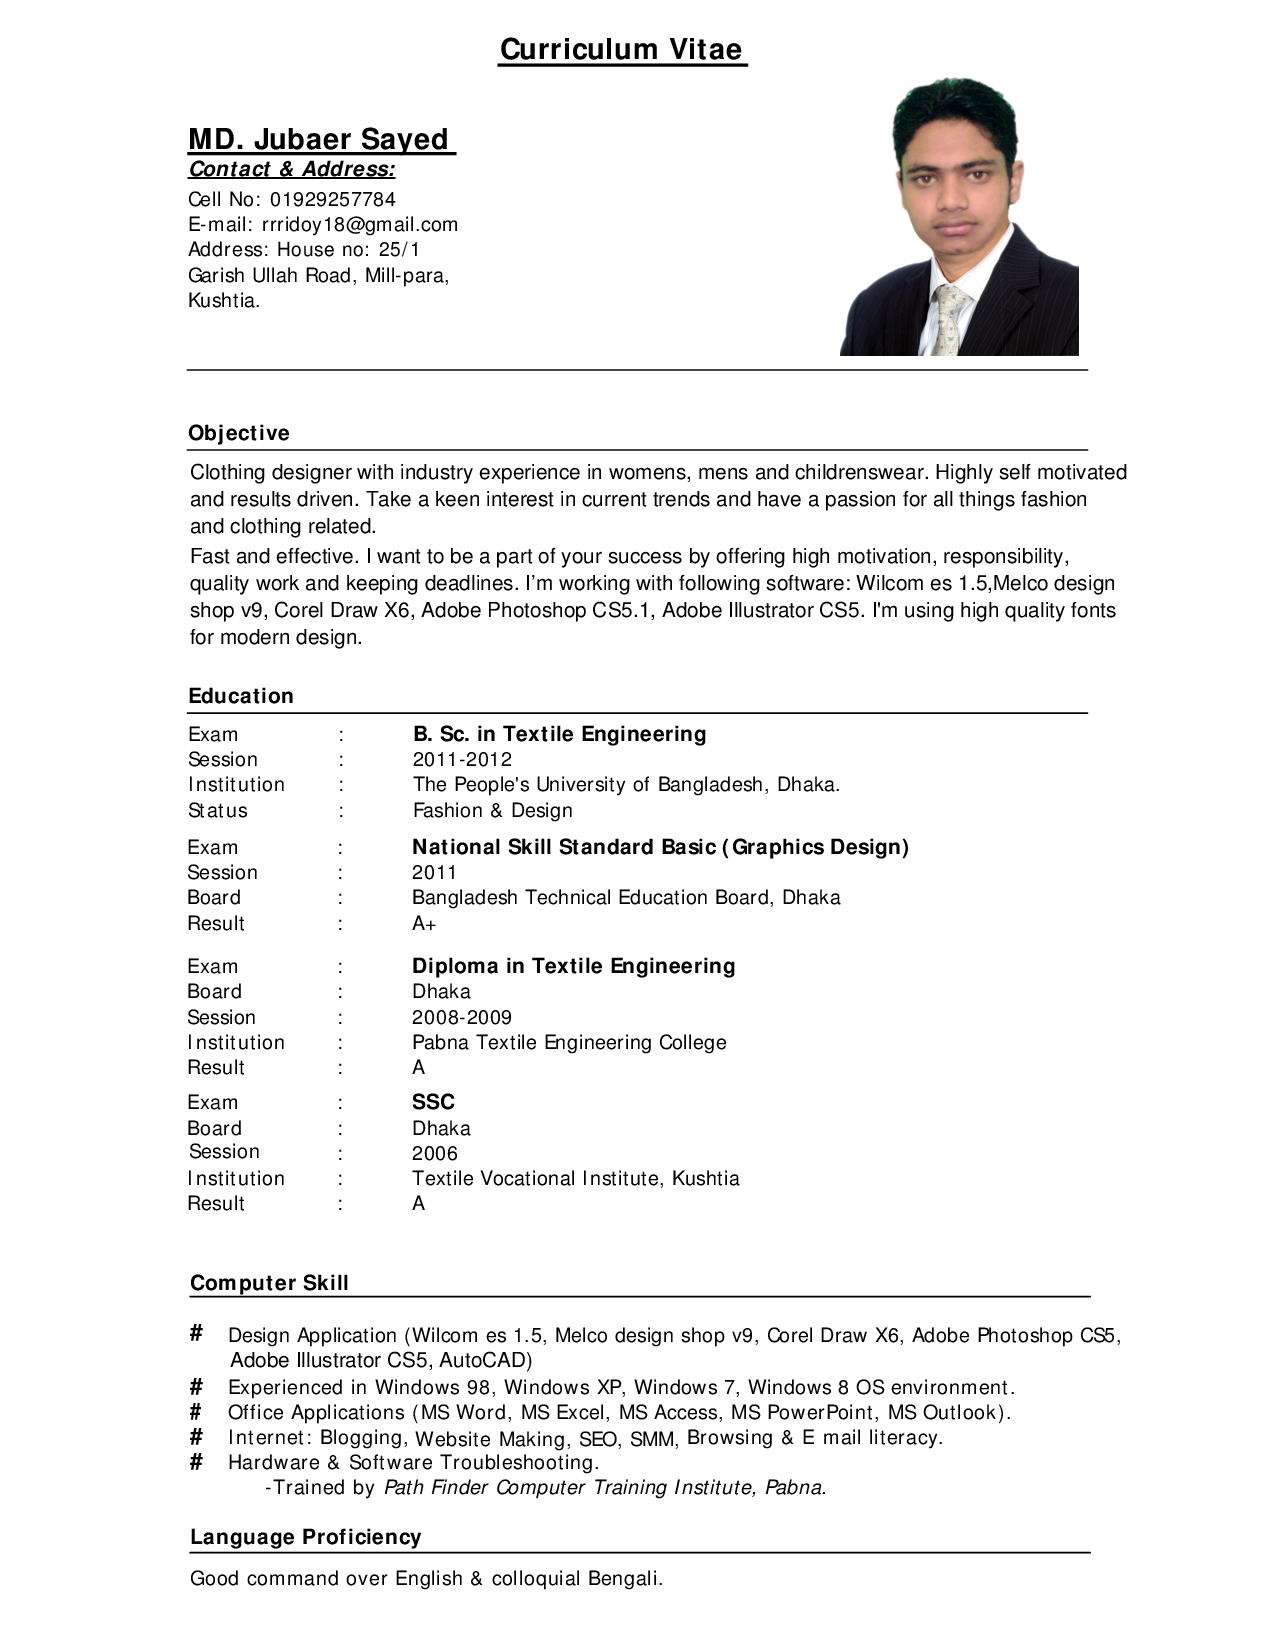 Example Resume, Computer Skills And Education For Curriculum Vitae Resume  Samples Pdf: Curriculum Vitae  Resume Computer Skills Section